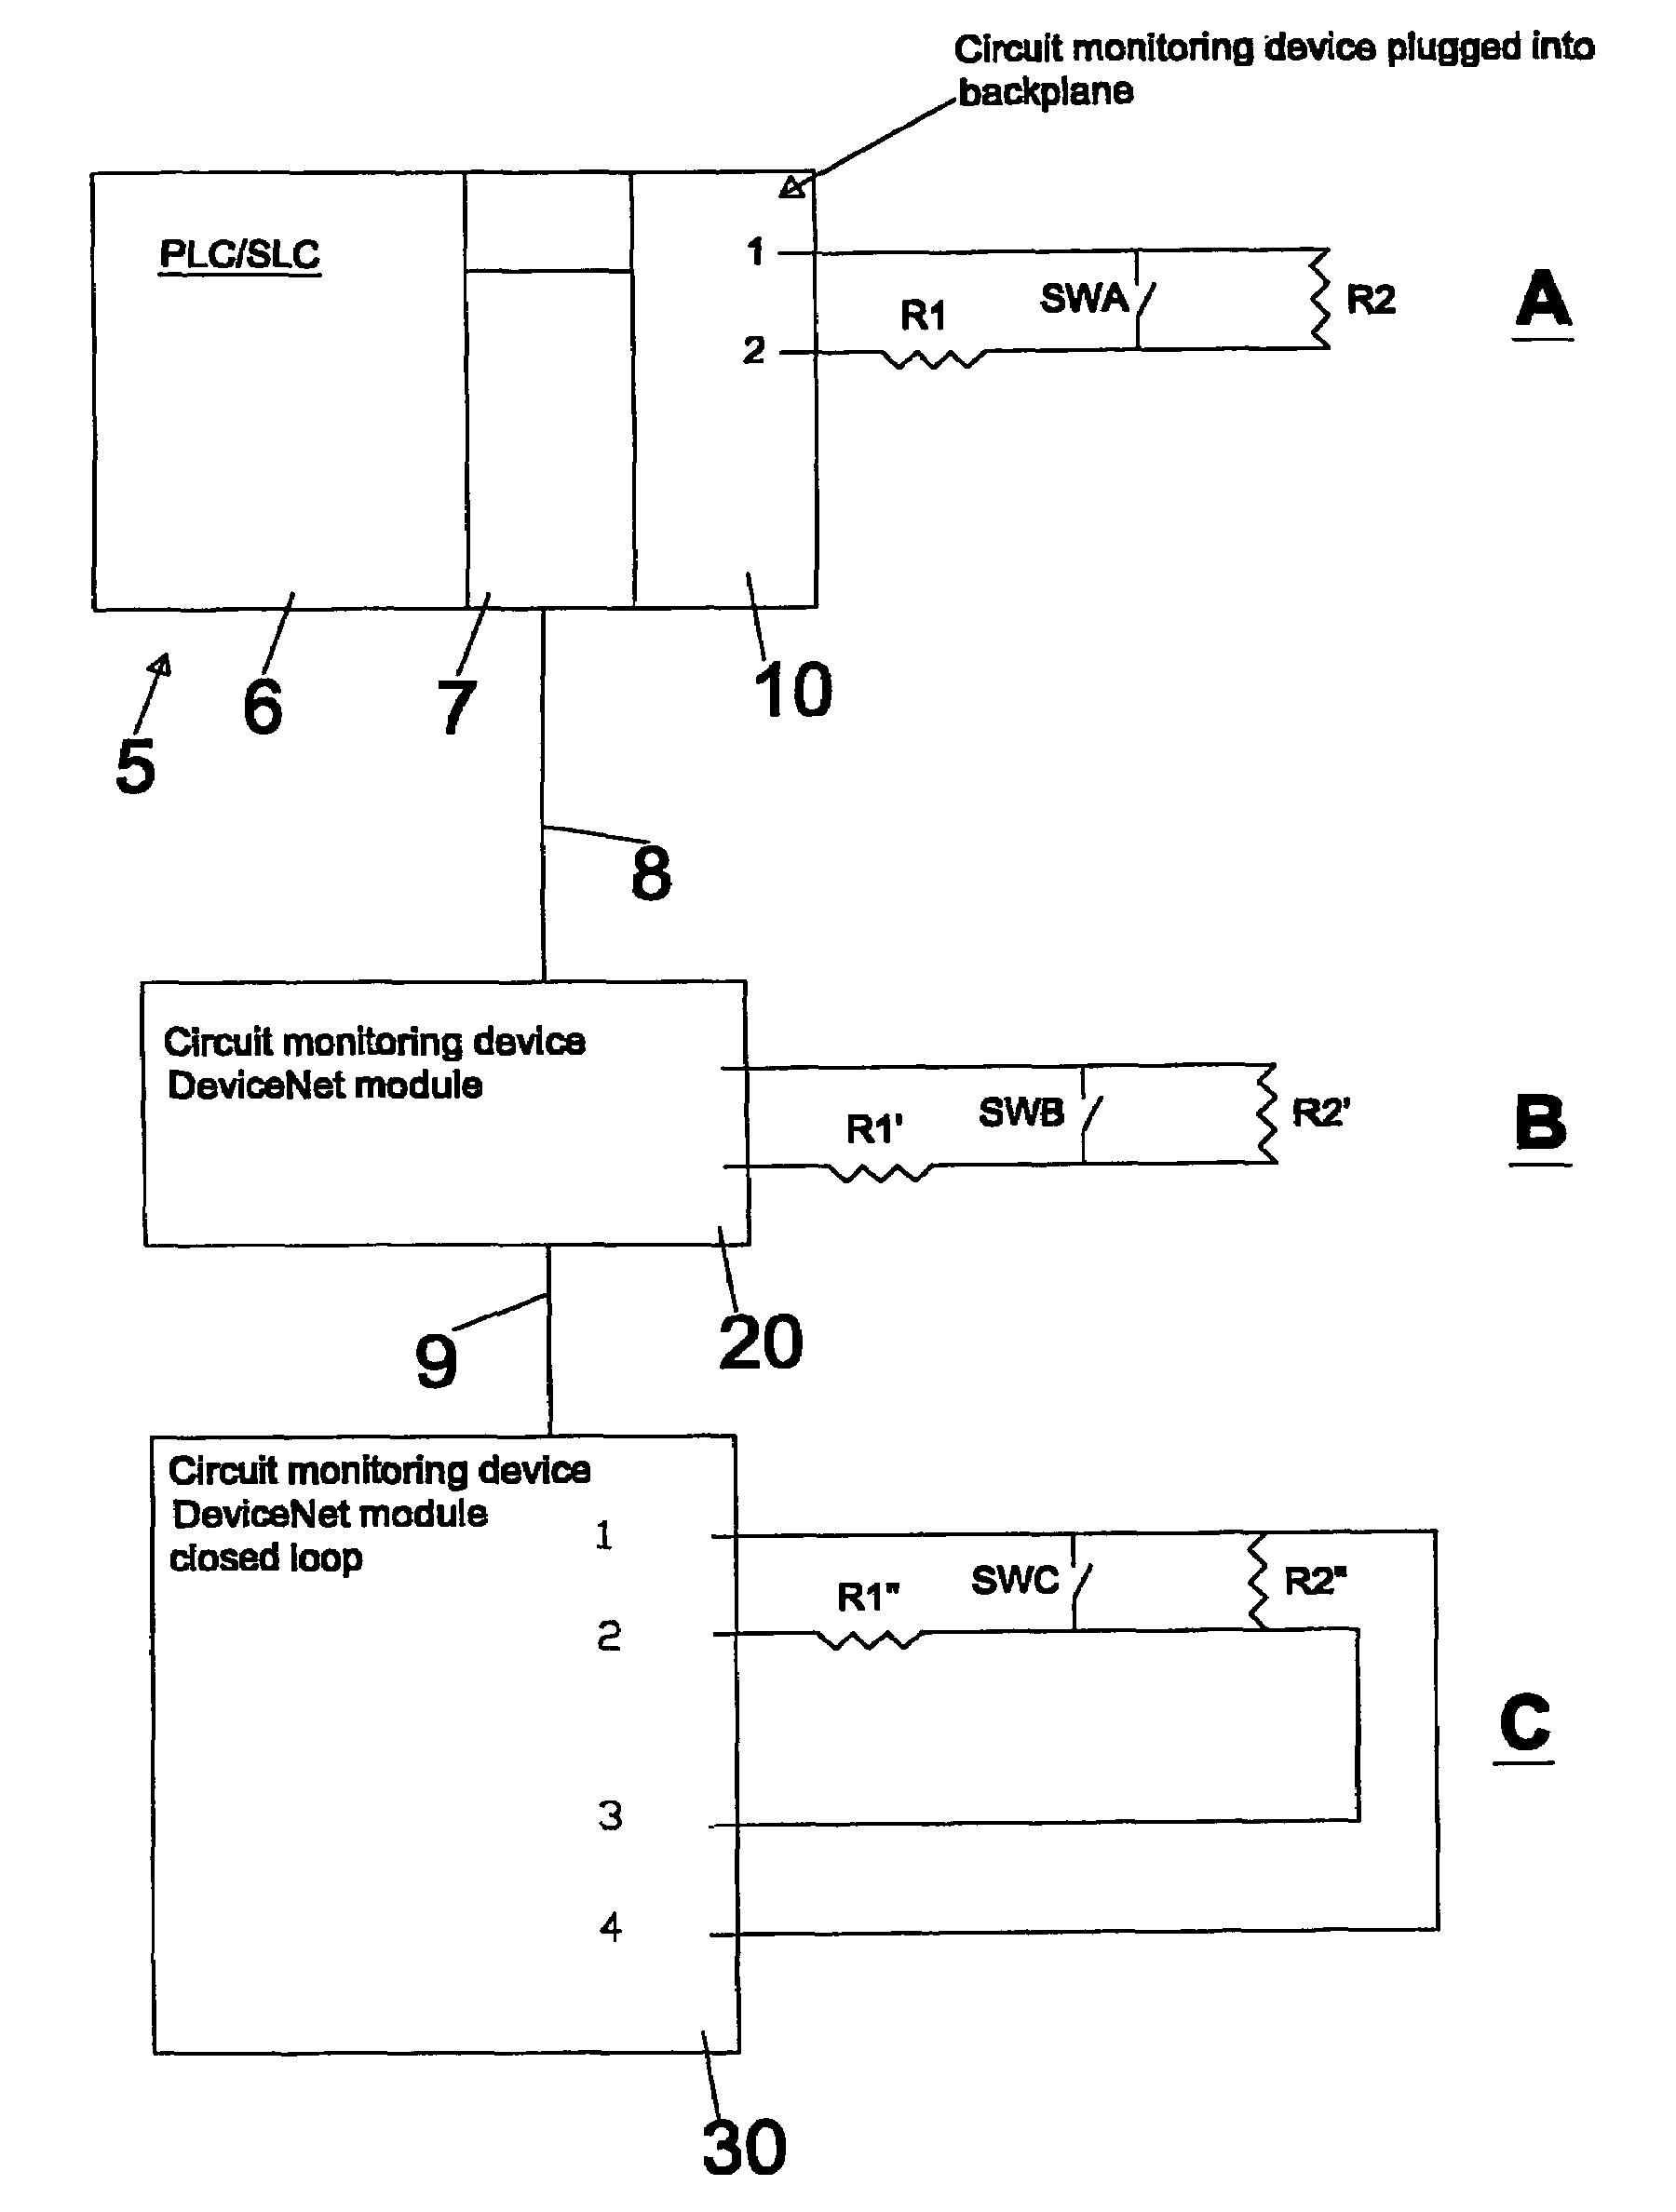 Patent Us 7256683 B2 Made Circuitry And Either It Simple 2010 The Limiting As First Claim